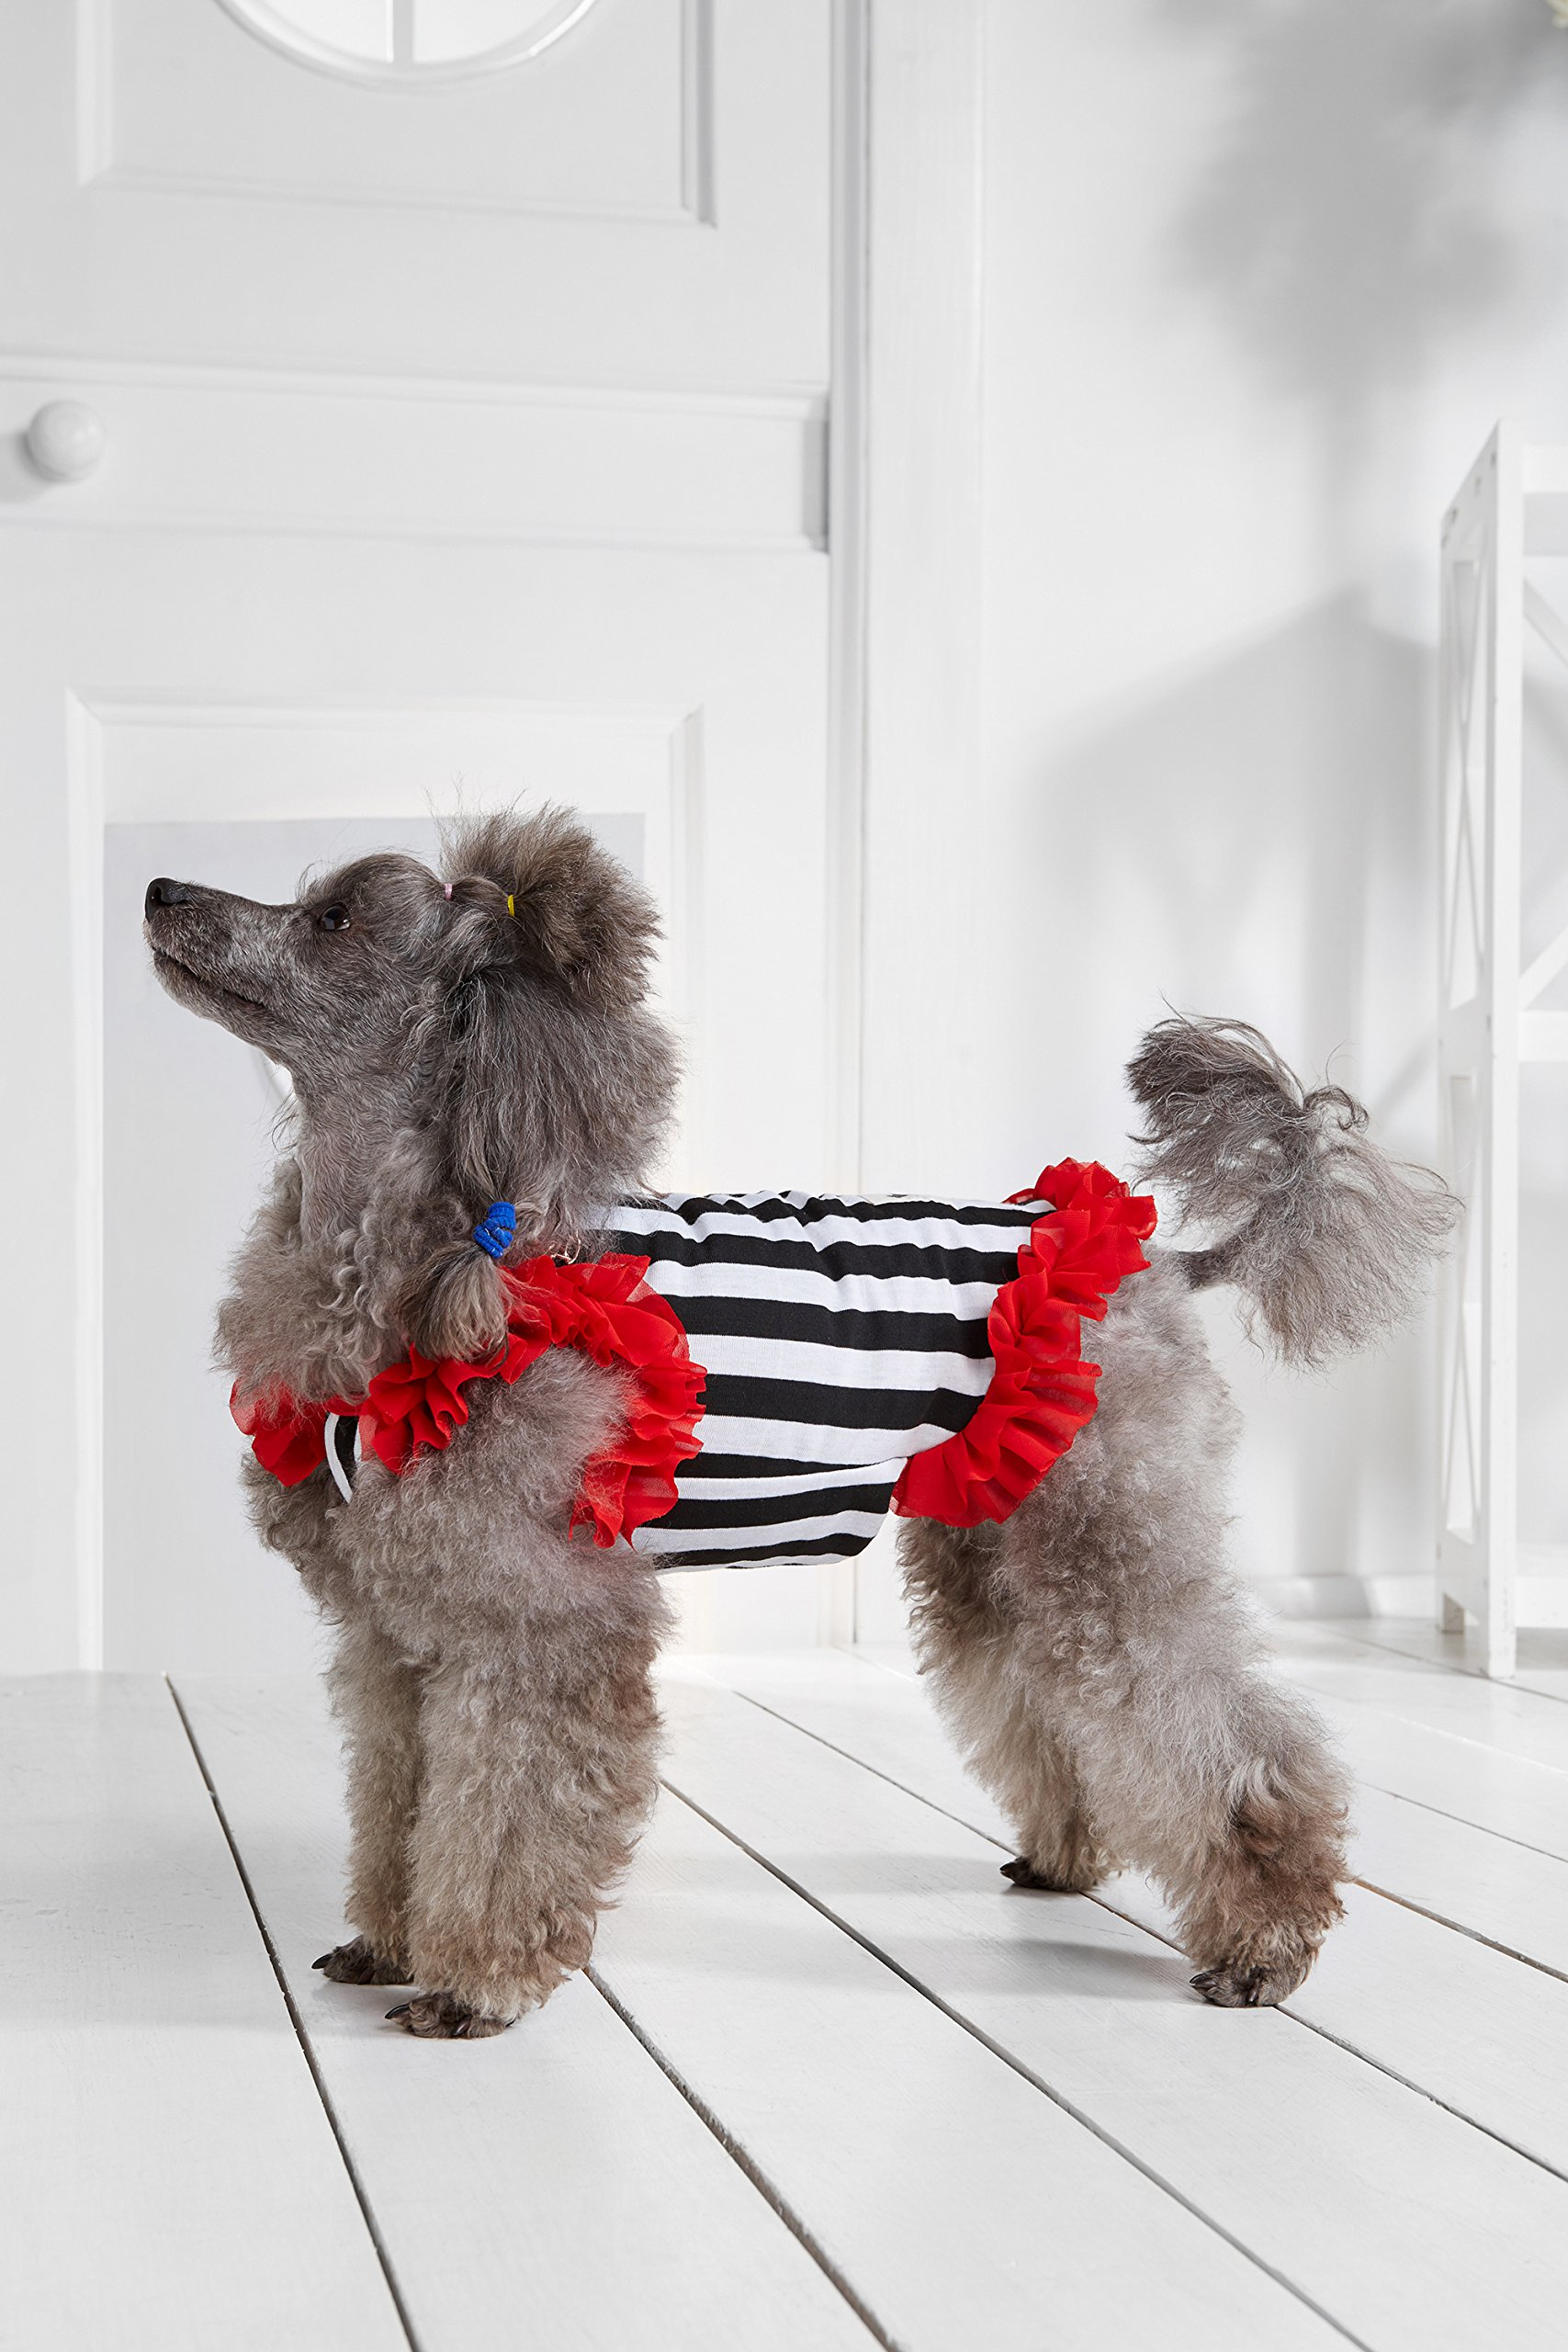 """Small Dog Striped Dress With Ruffles Satin Bow Chain Dogs Cotton Summer Clothes (Toy Plus: 10"""" / 5-9 lbs, Red, Black, White) by Nothing But Love Pets (Image #5)"""